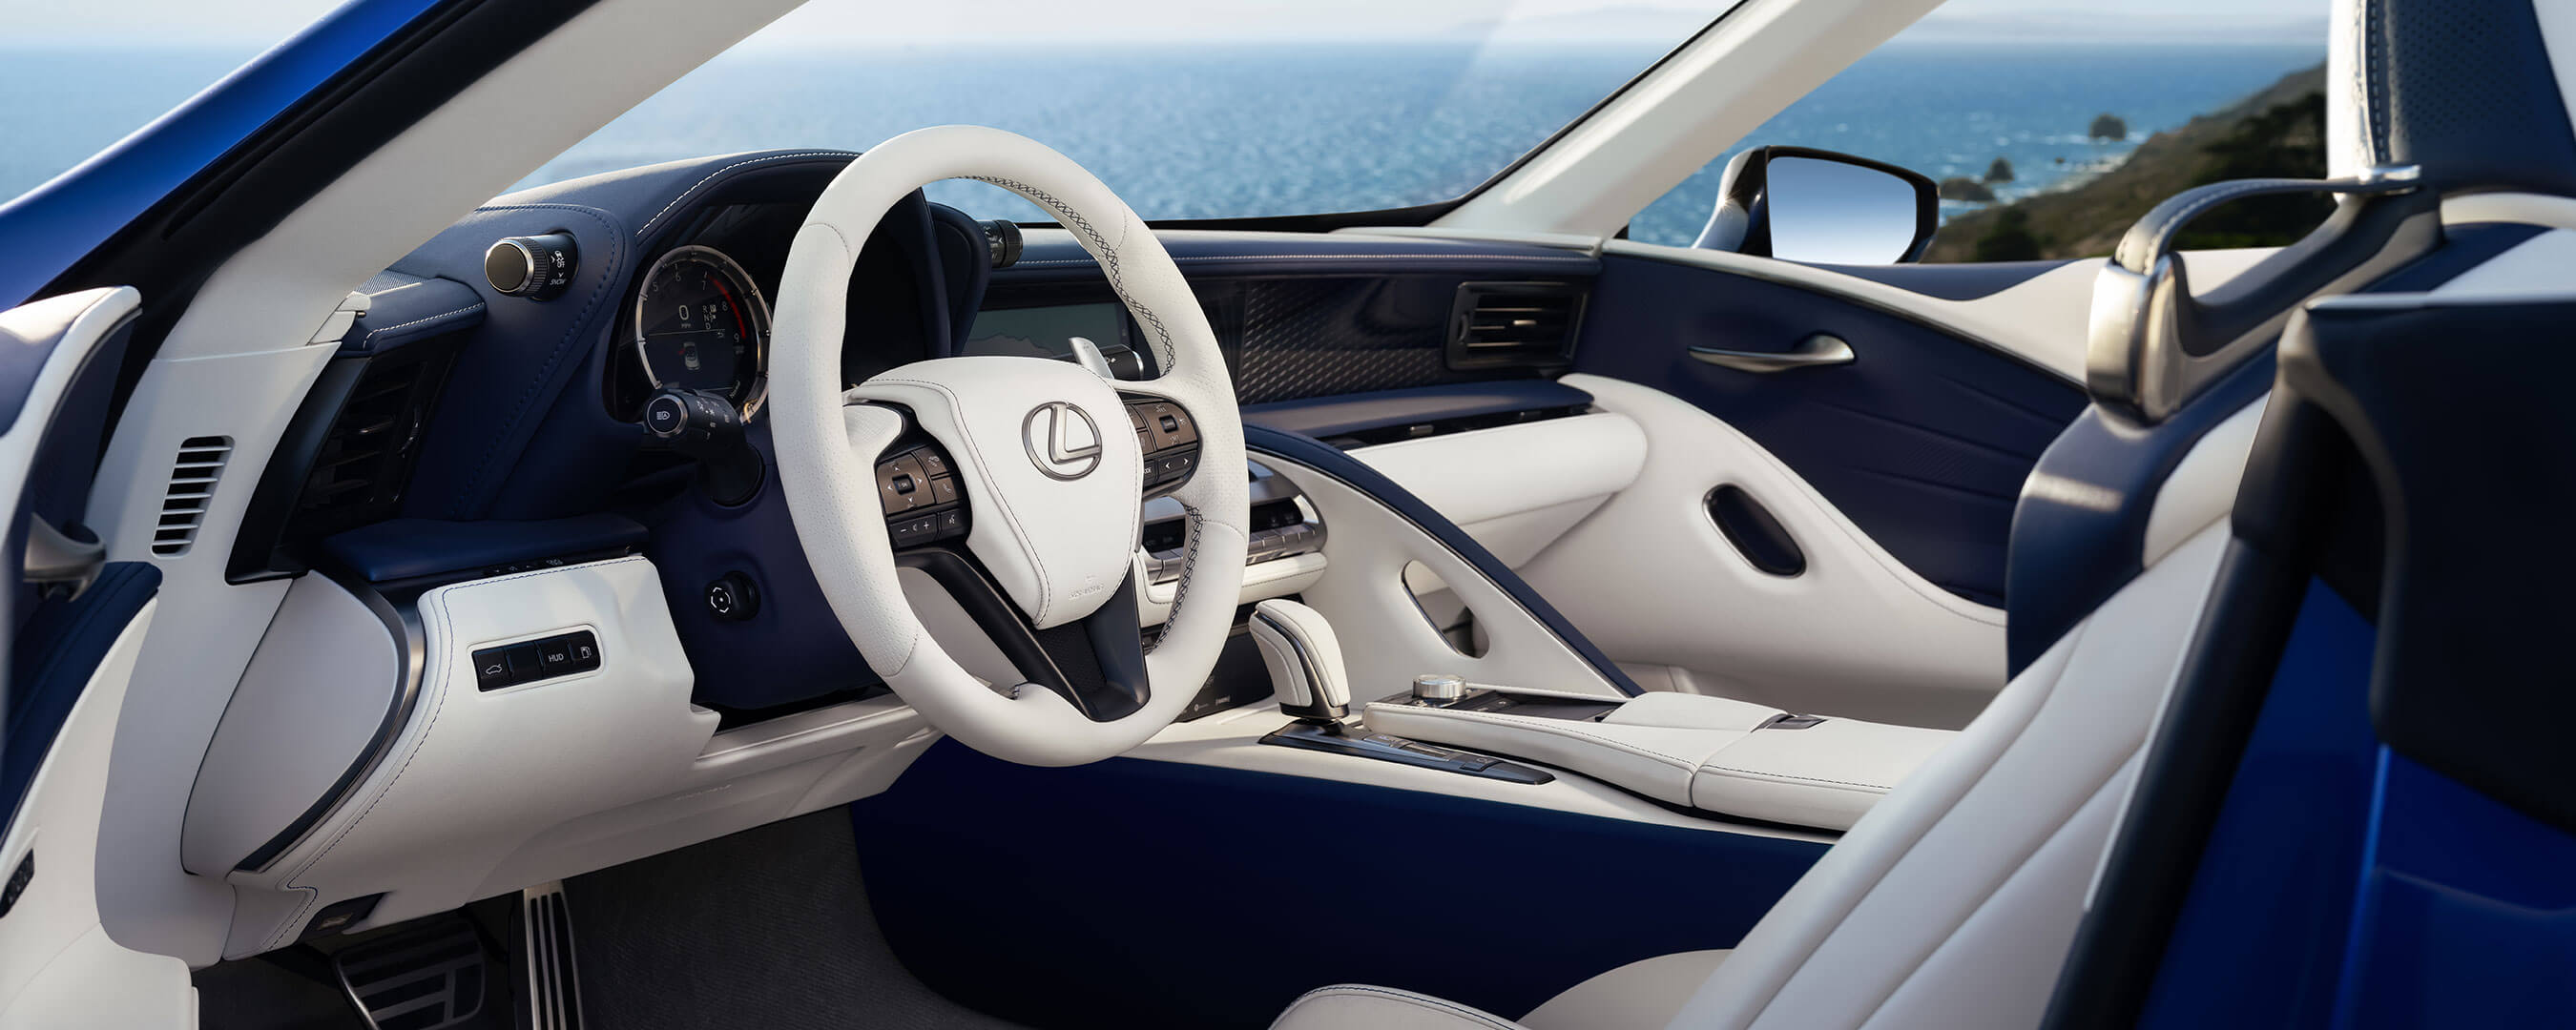 2020 lexus lc convertible experience interior front